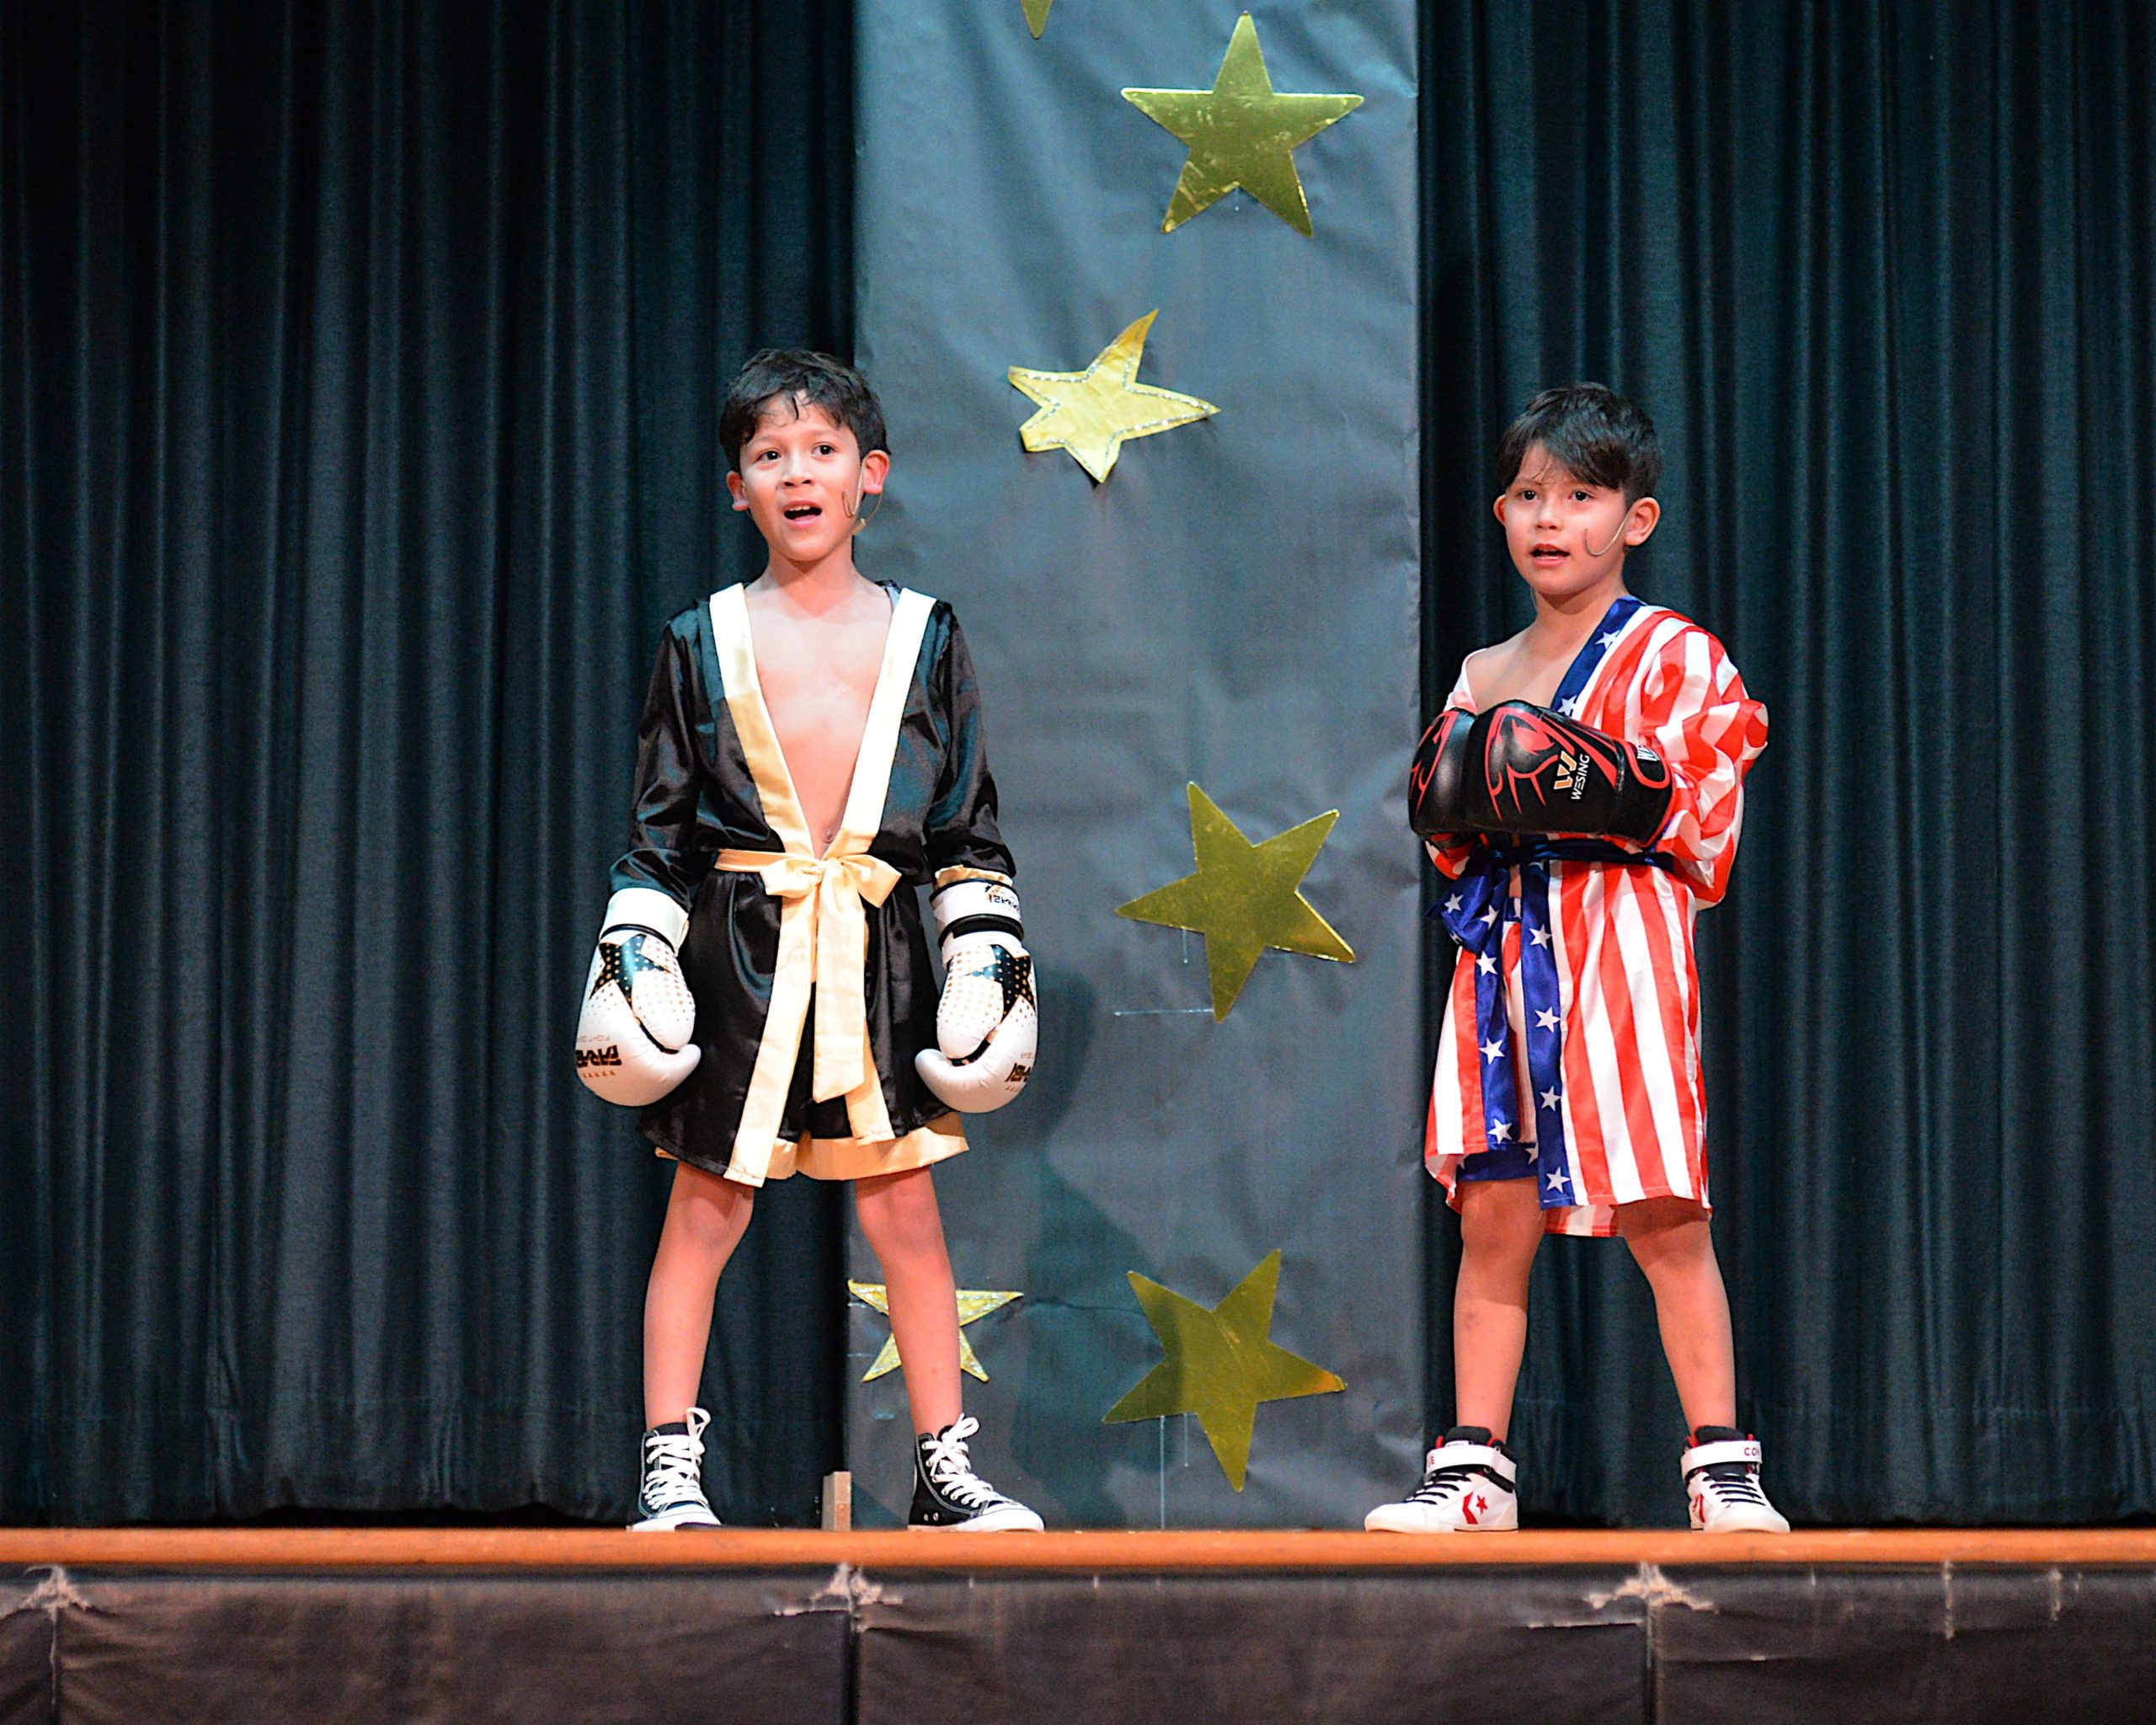 The Montauk School students were invited to participate in a Variety Show on Friday evening. Matthew and Nathan Altagracia were in the show. KYRIL BROMLEY